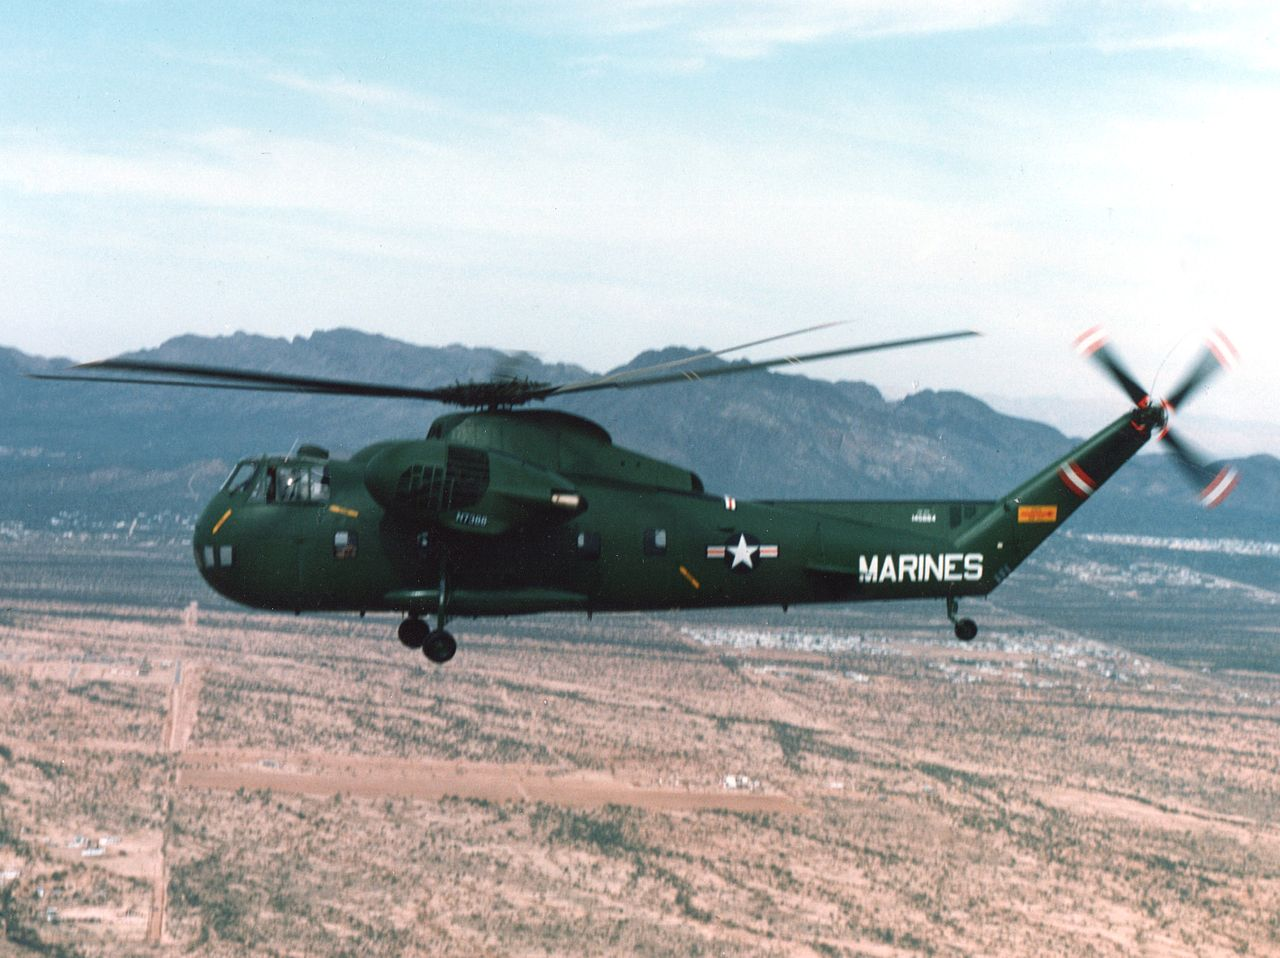 Here's why the CH-37 Mojave is (probably) the worst military helicopter ever made